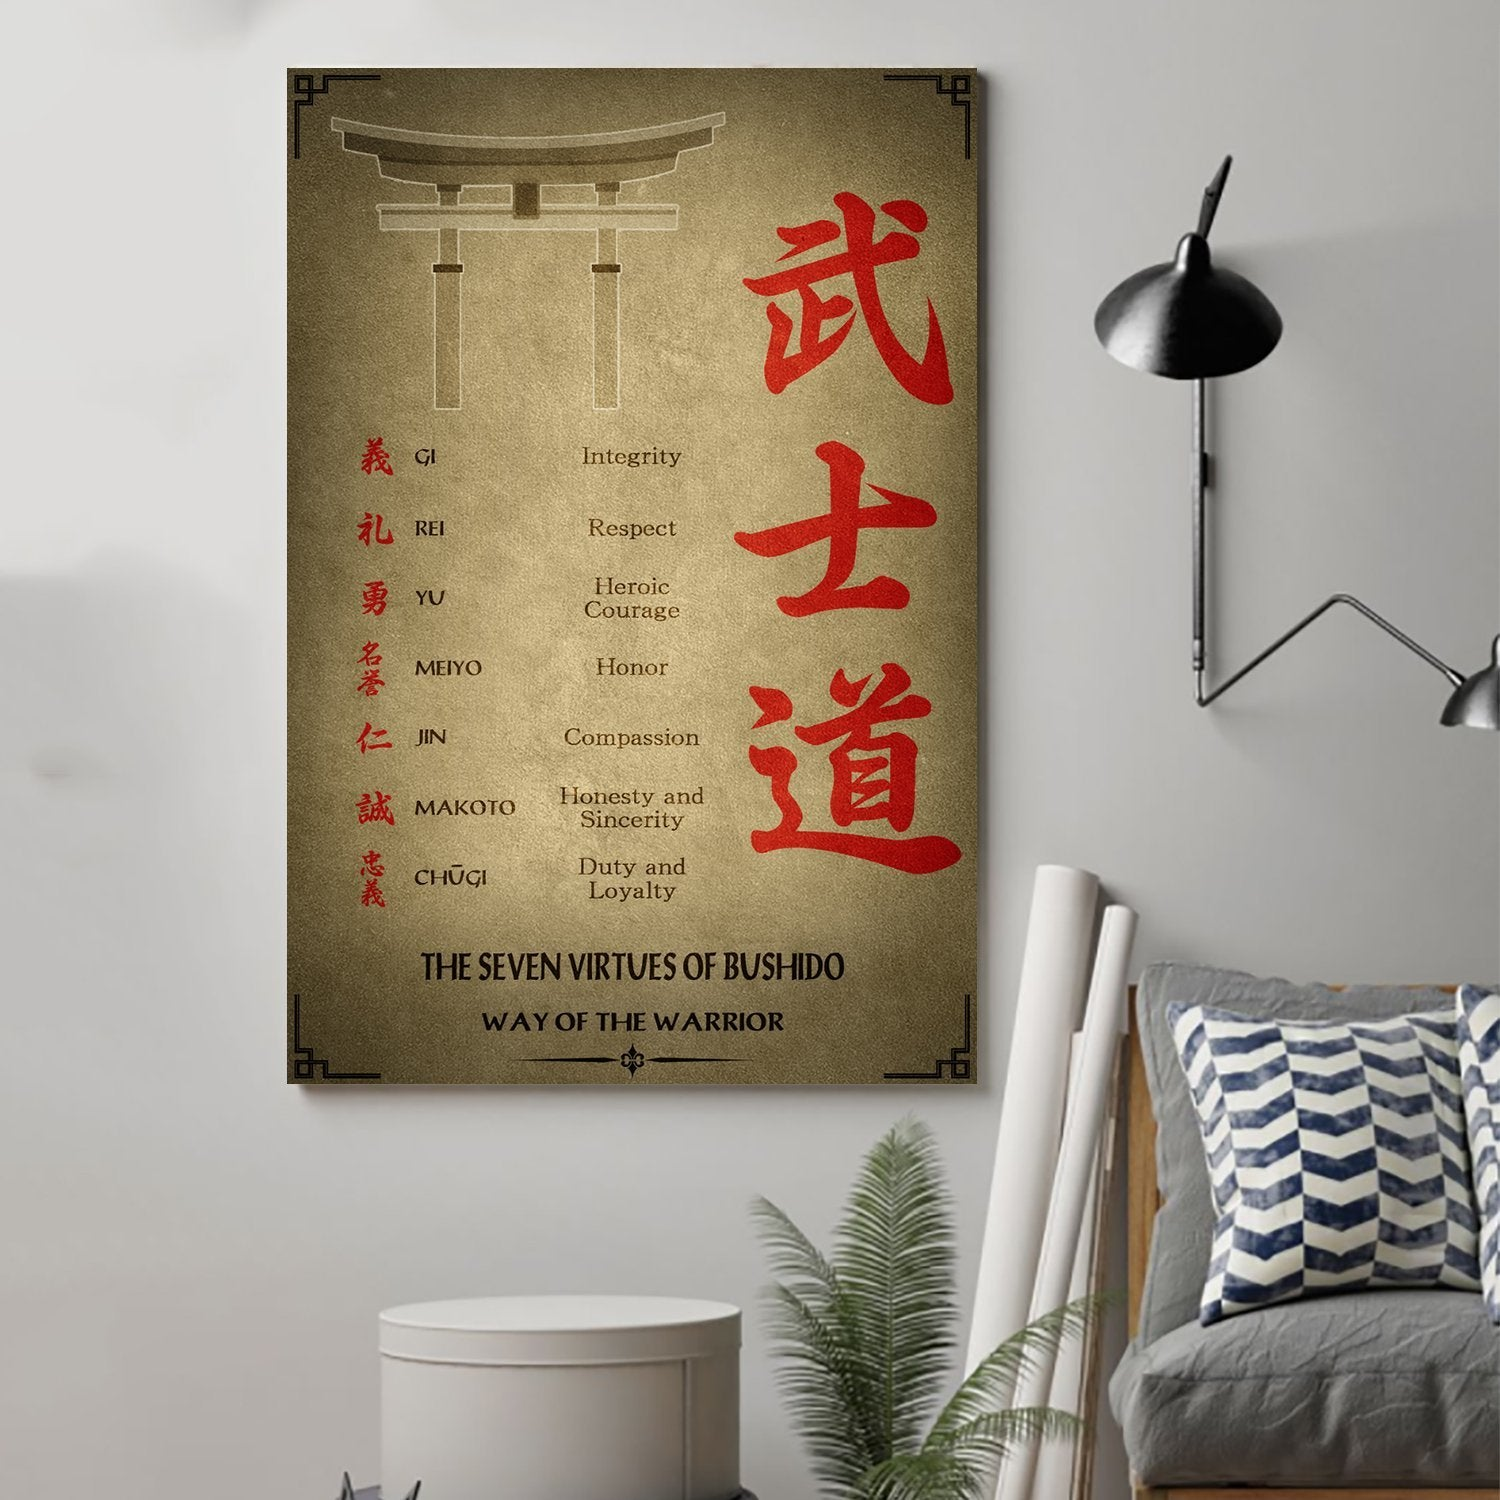 (cv33) Samurai Poster - the seven virtues